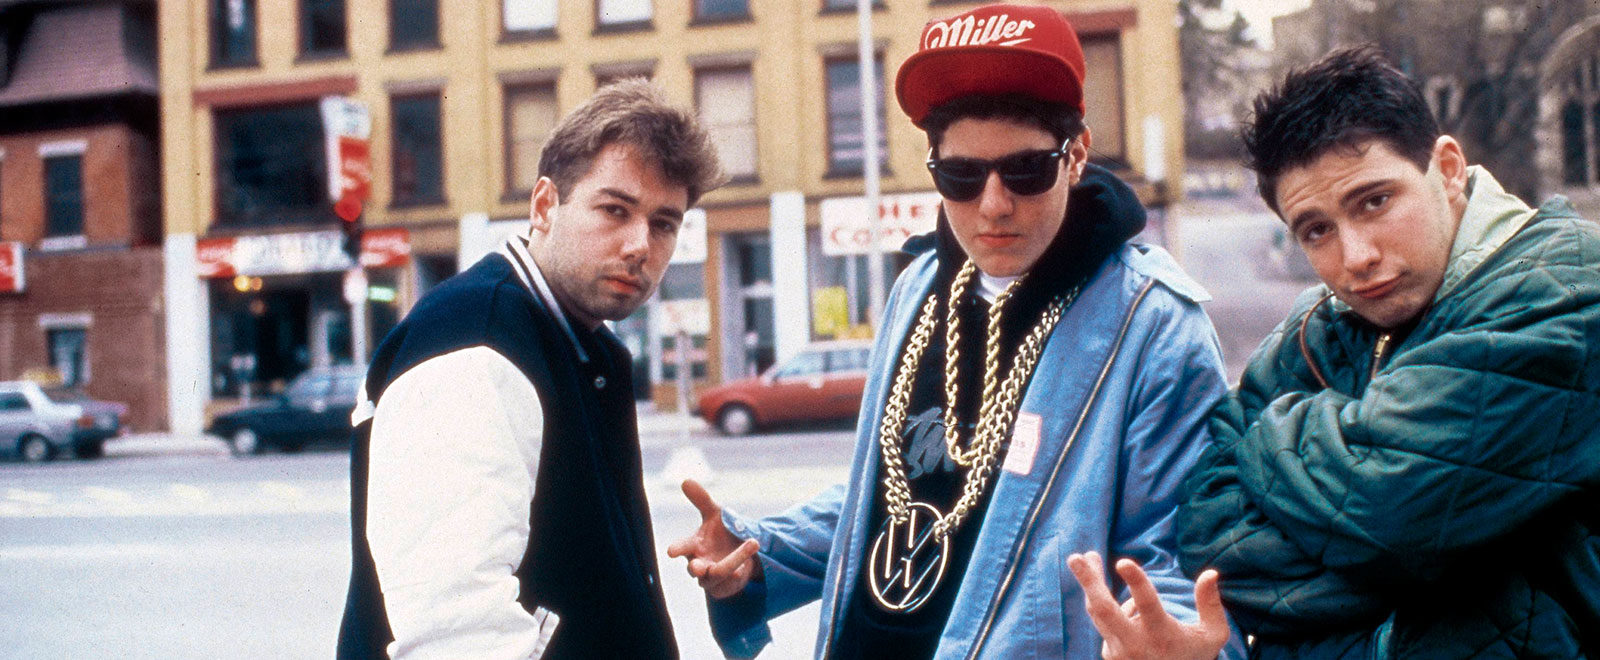 Beastie Boys: A New York Story